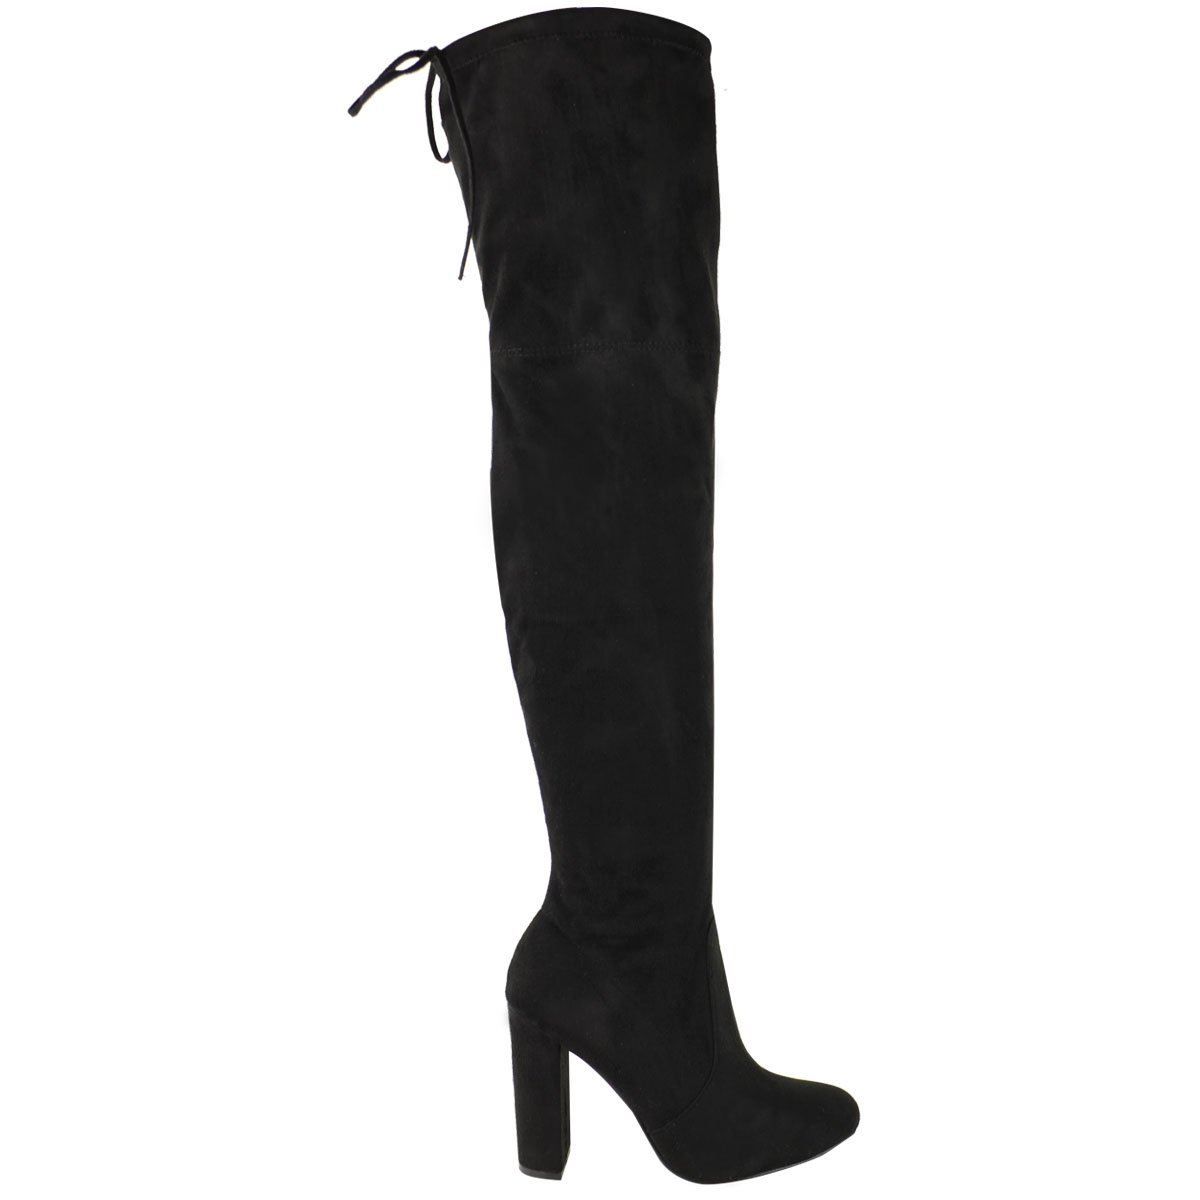 3e203406f210 Amazon.com  Fashion Thirsty Womens Thigh High Boots Over The Knee Party  Stretch Block Mid Heel Size  Clothing